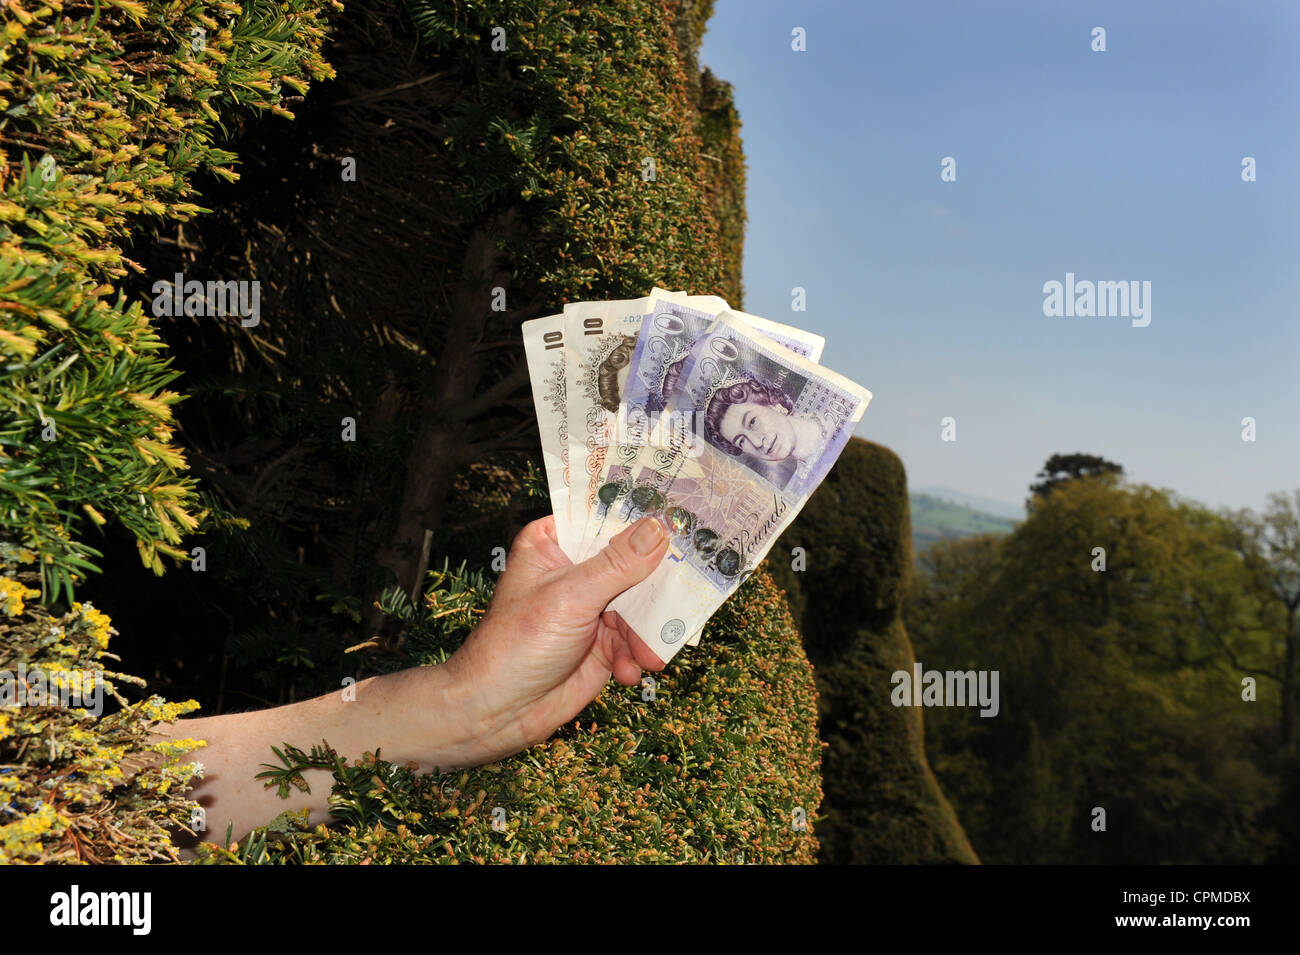 Cash on hedge - Stock Image